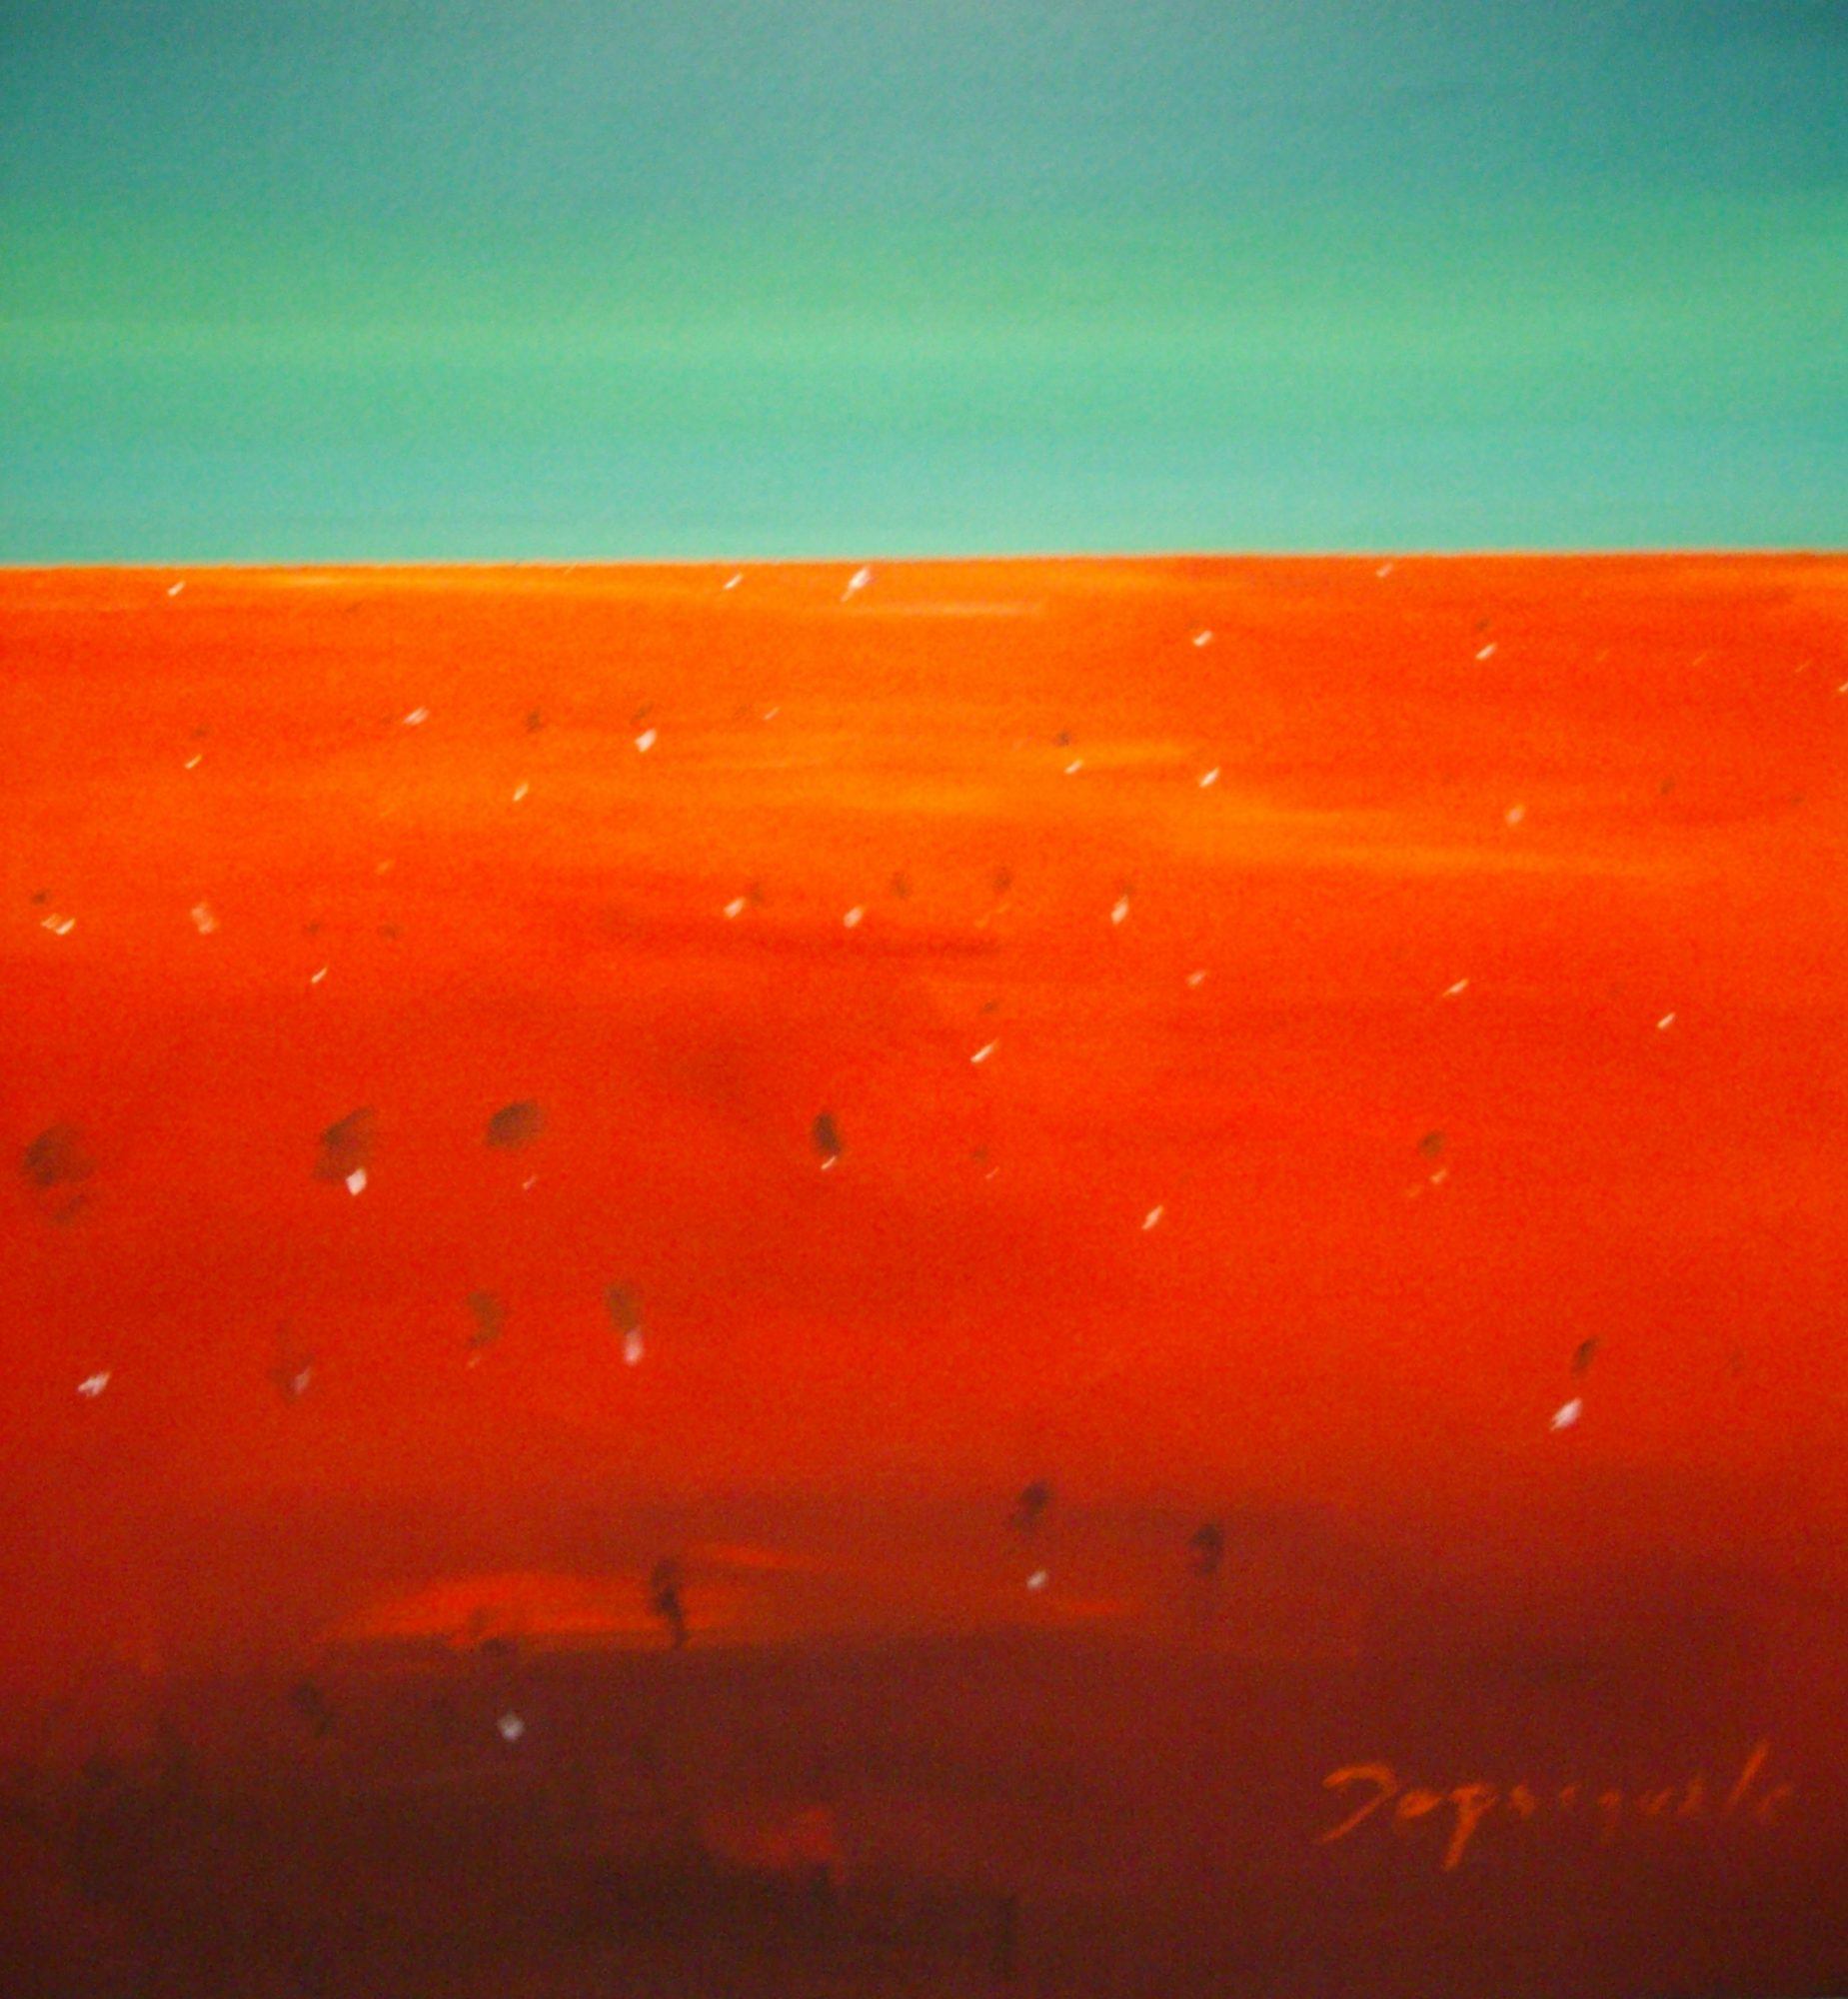 vistas-1-outback-acrylic-on-canvas1x1mtrprice1800-packing-deliv-550-within-australia